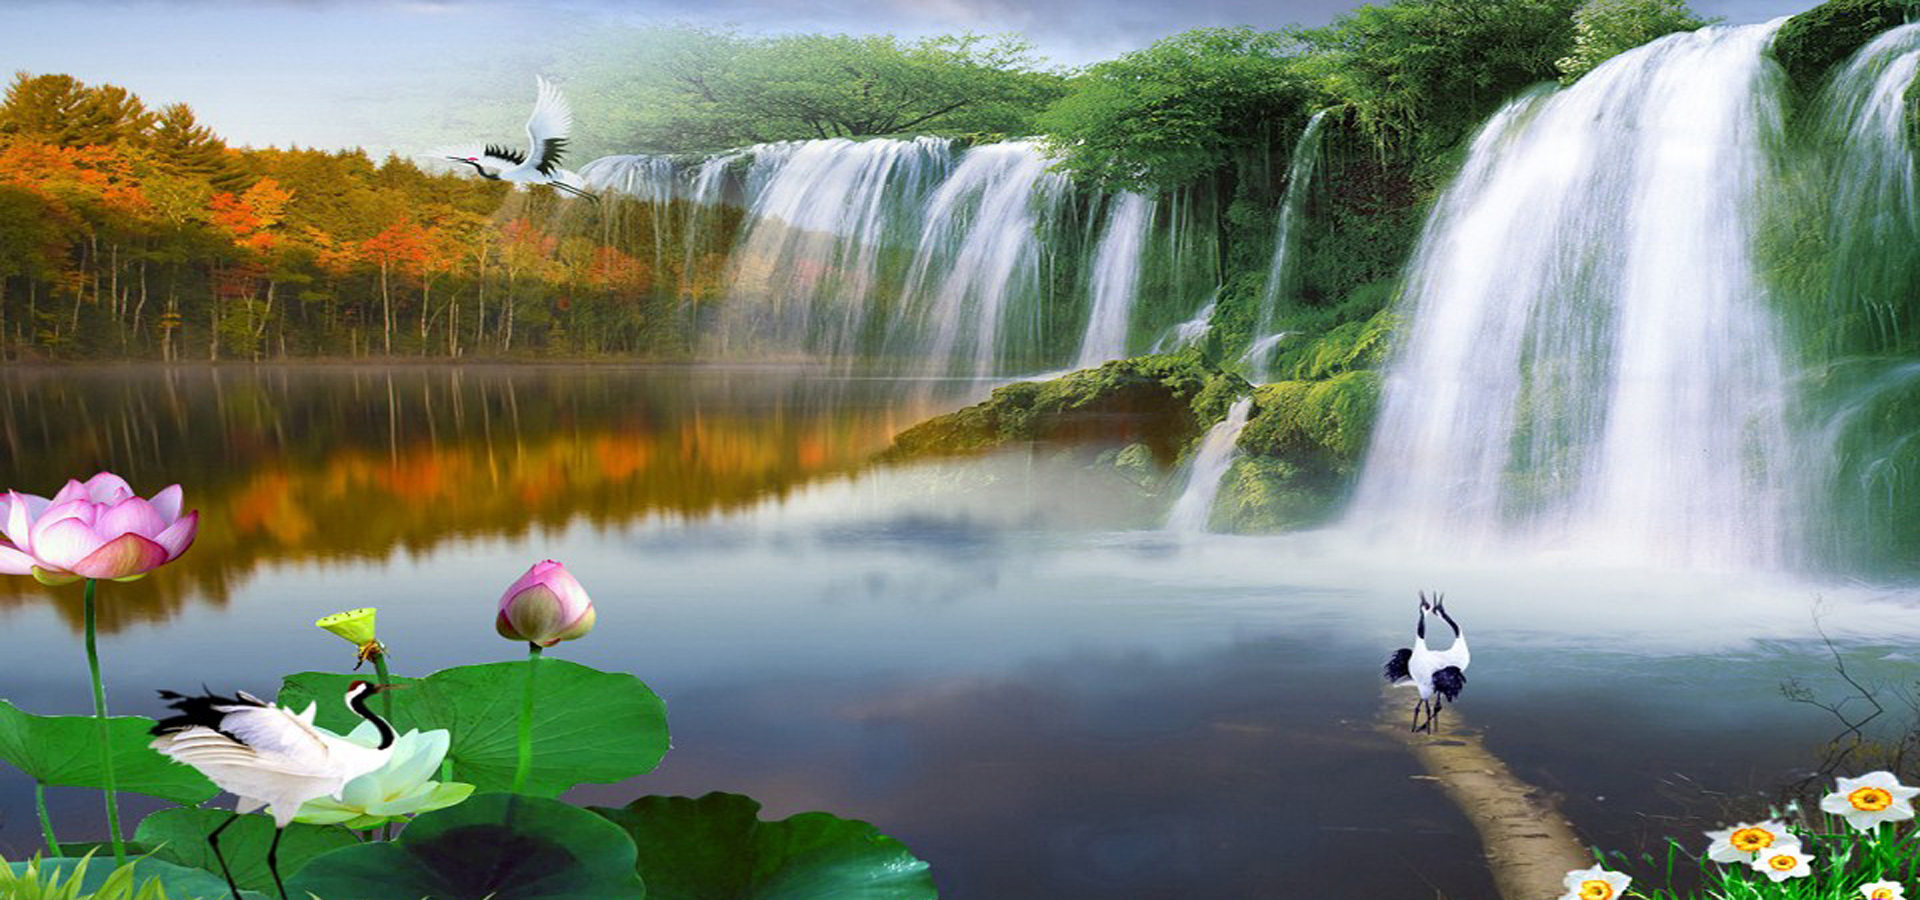 Nature Background, Natural, Scenery, Waterfall Background ...